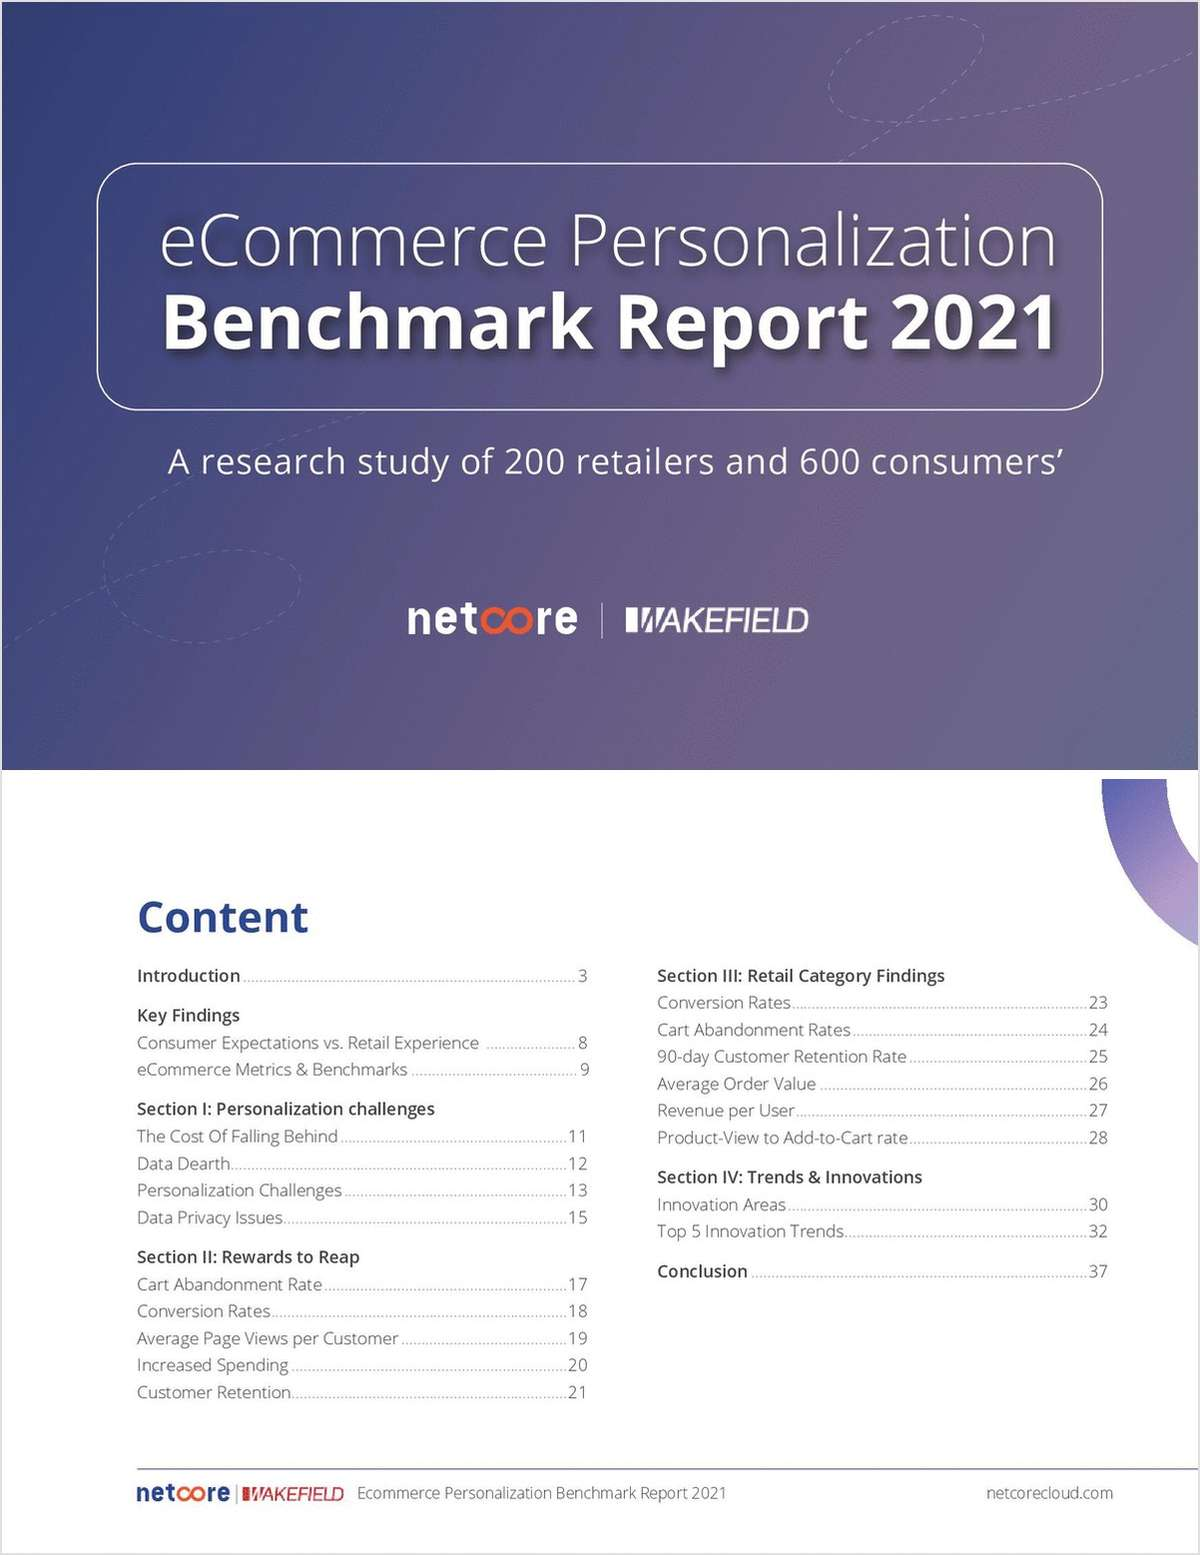 Ecommerce Personalization Benchmark Report 2021